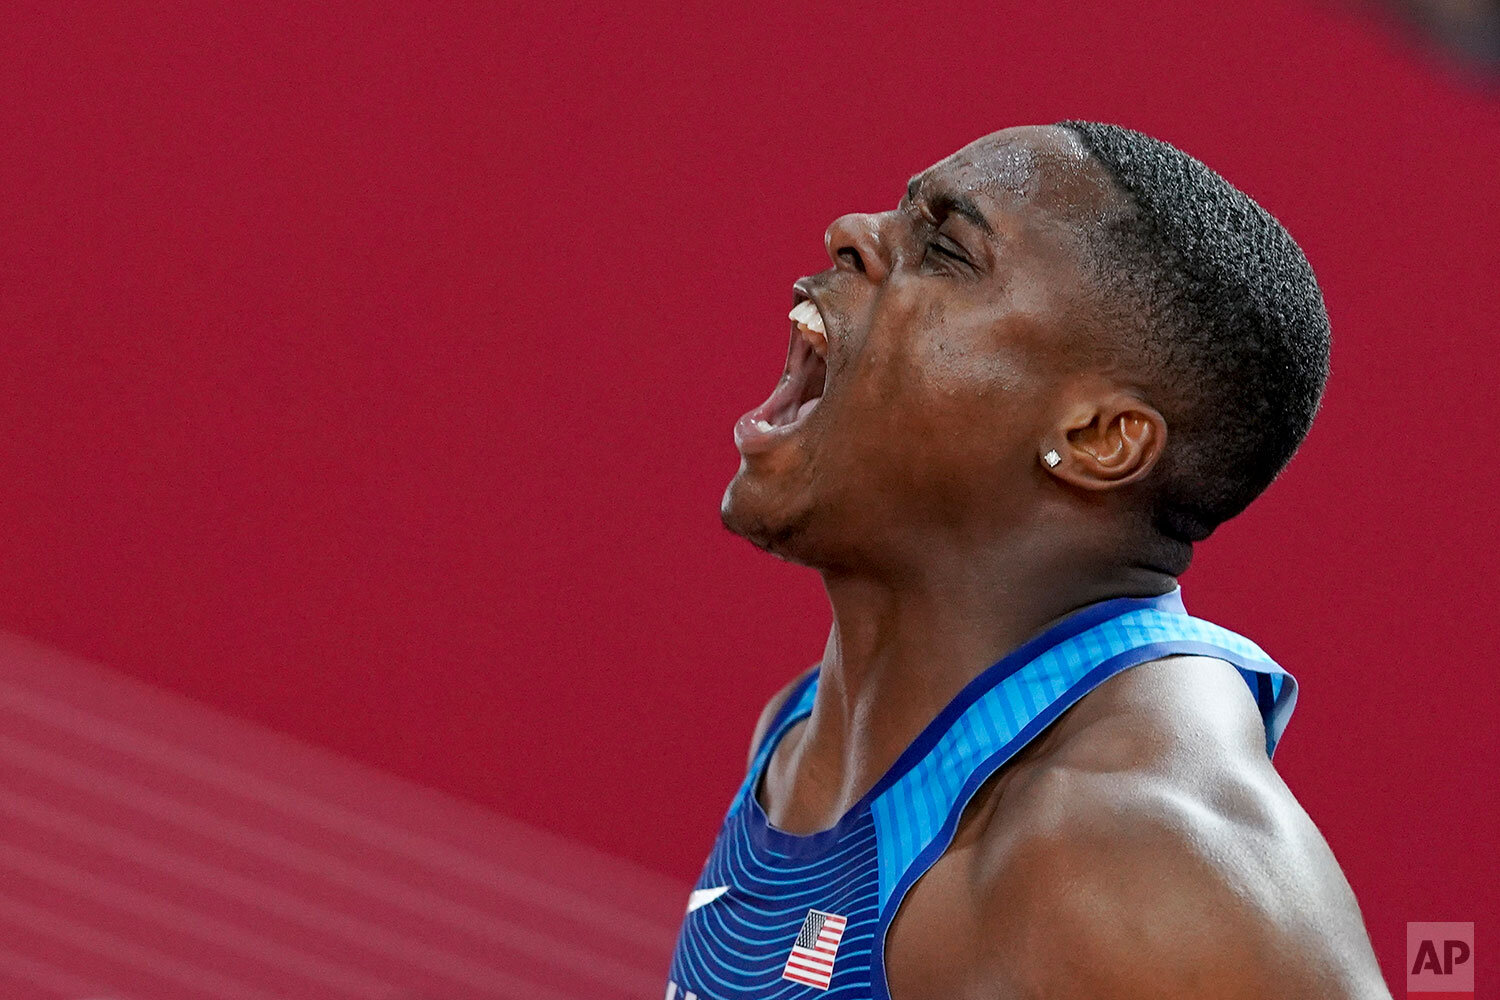 Christian Coleman, of the United States, celebrates after crossing the finish line to win the men's 100 meter during the World Athletics Championships in Doha, Qatar, Saturday, Sept. 28, 2019.(AP Photo/David J. Phillip)